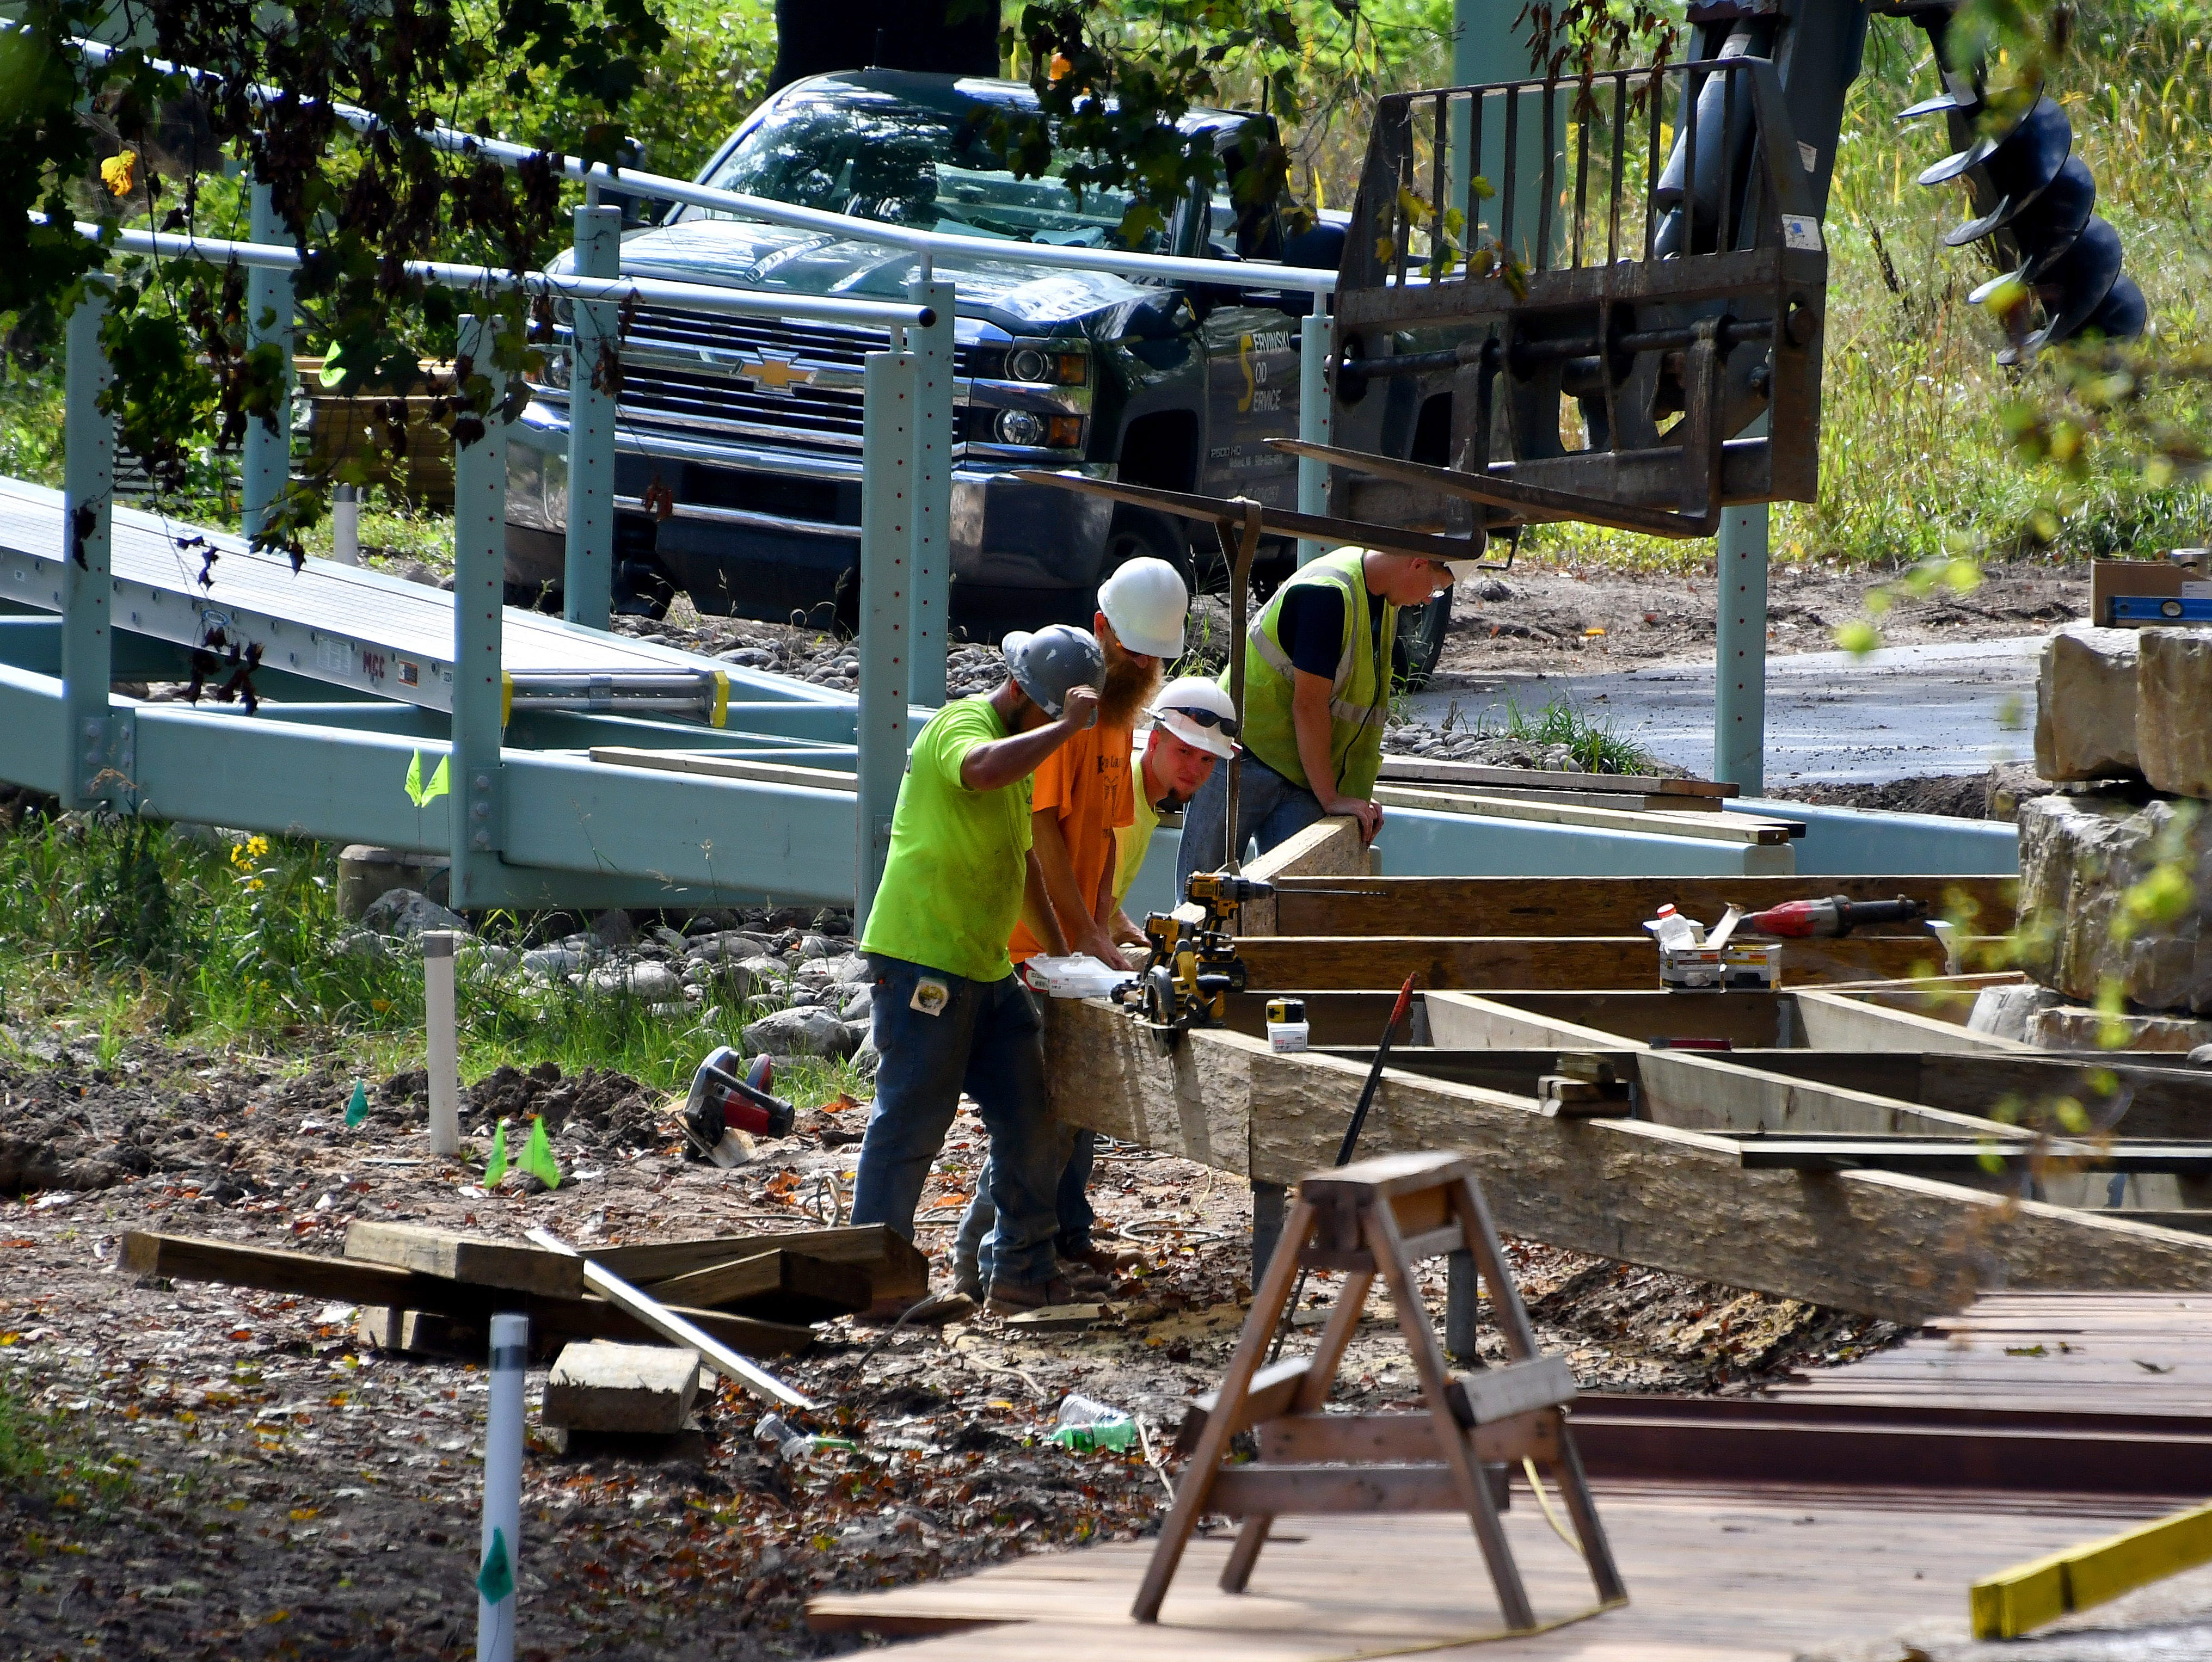 Workers in Whiting Forest build a board walk to connect with a pedestrian bridge that will span St. Andrews Road and link Whiting Forest with Dow Gardens.